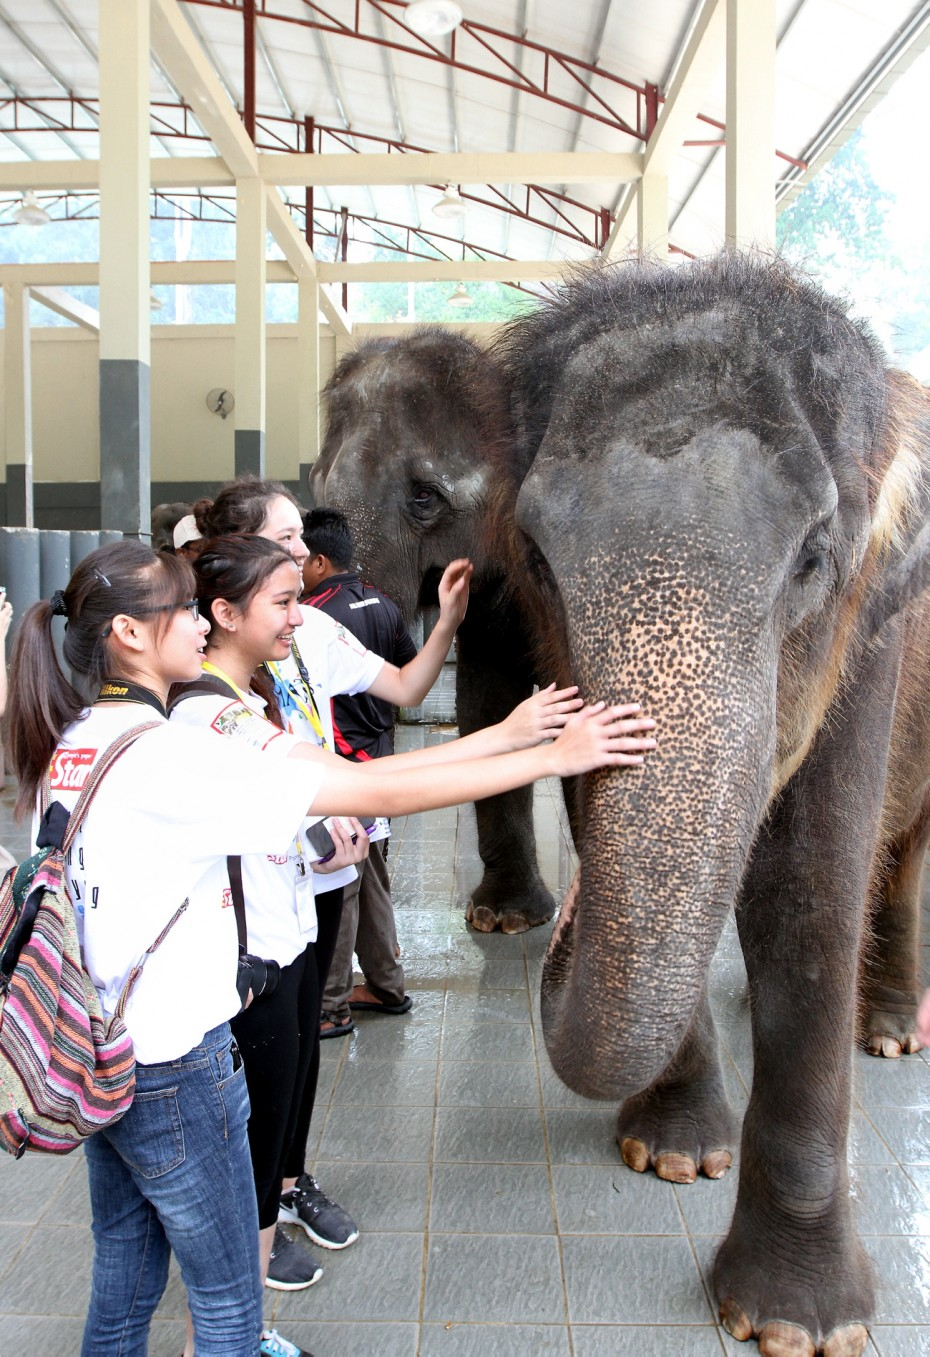 BRATs Raub participants got up close and personal with these big grey beasts at the Kuala Gandah Elephant Sanctuary. But it wasn't all fun and games - they had to clean out the elephants' stalls and feed them brunch, too! Photo: SAMUEL ONG/ The Star